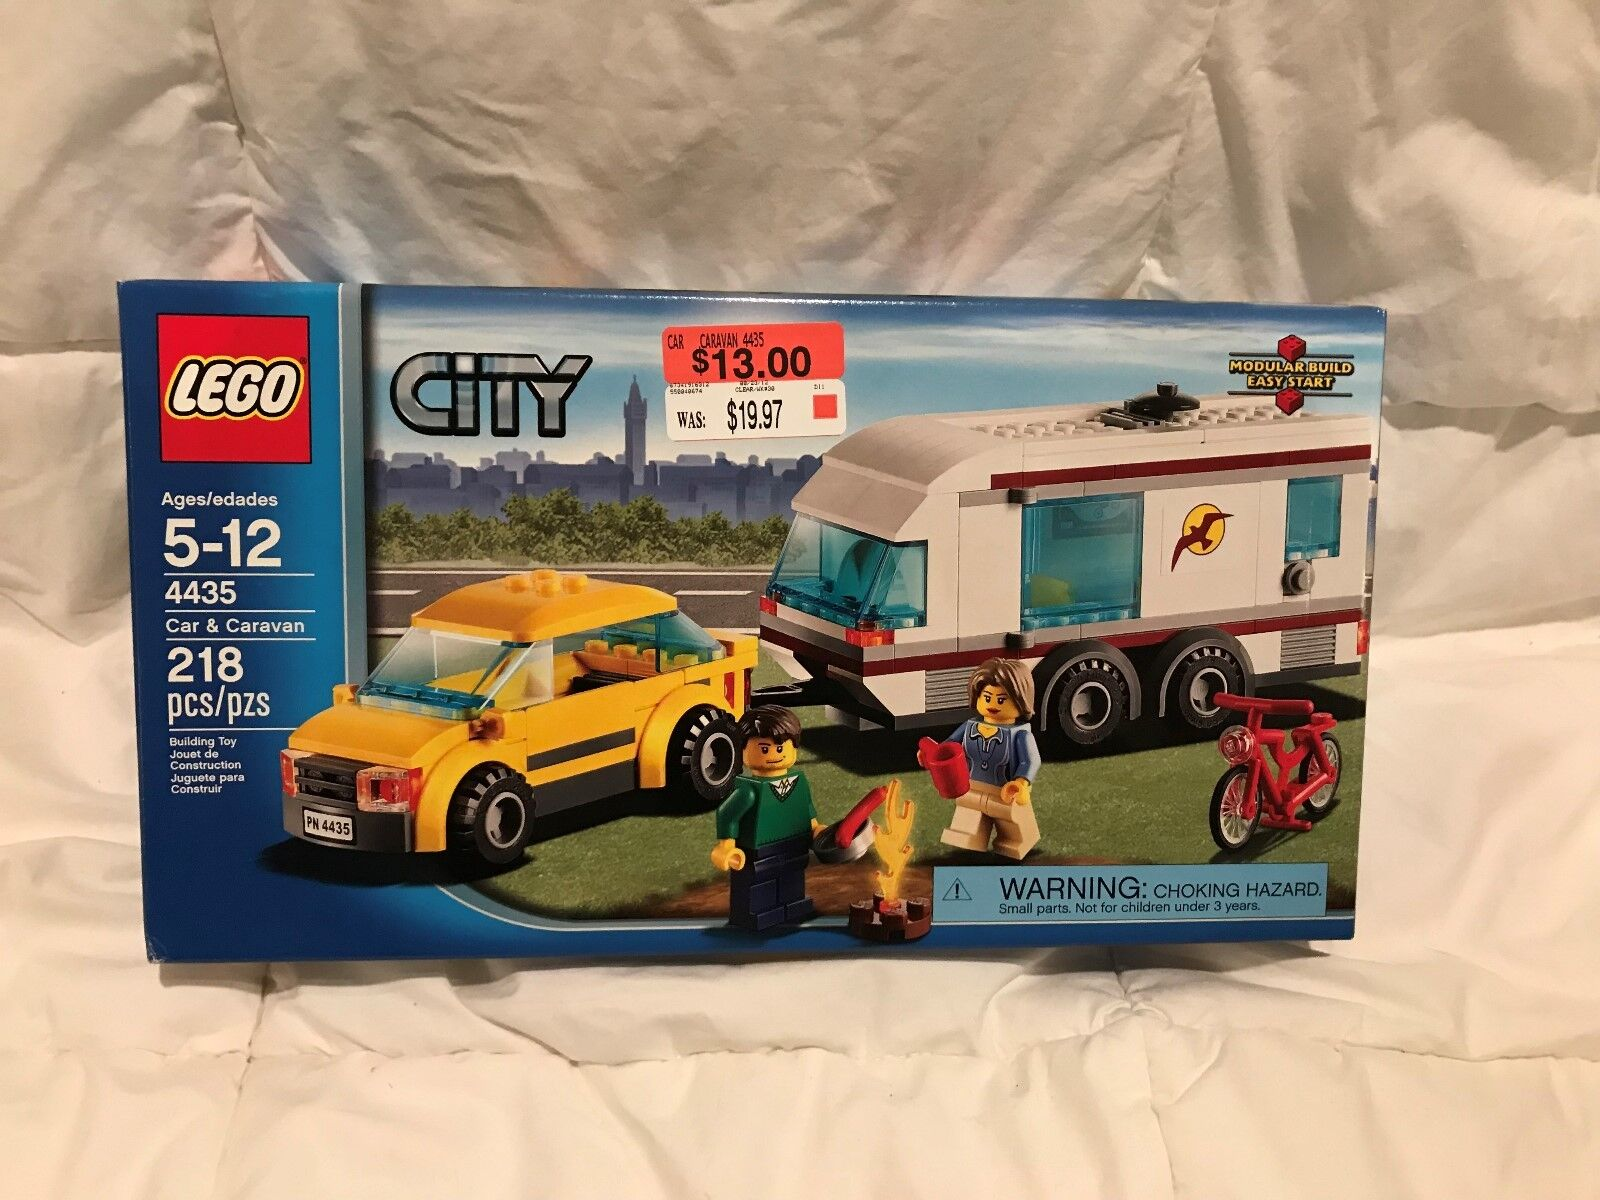 LEGO City Town Car and Caravan 4435